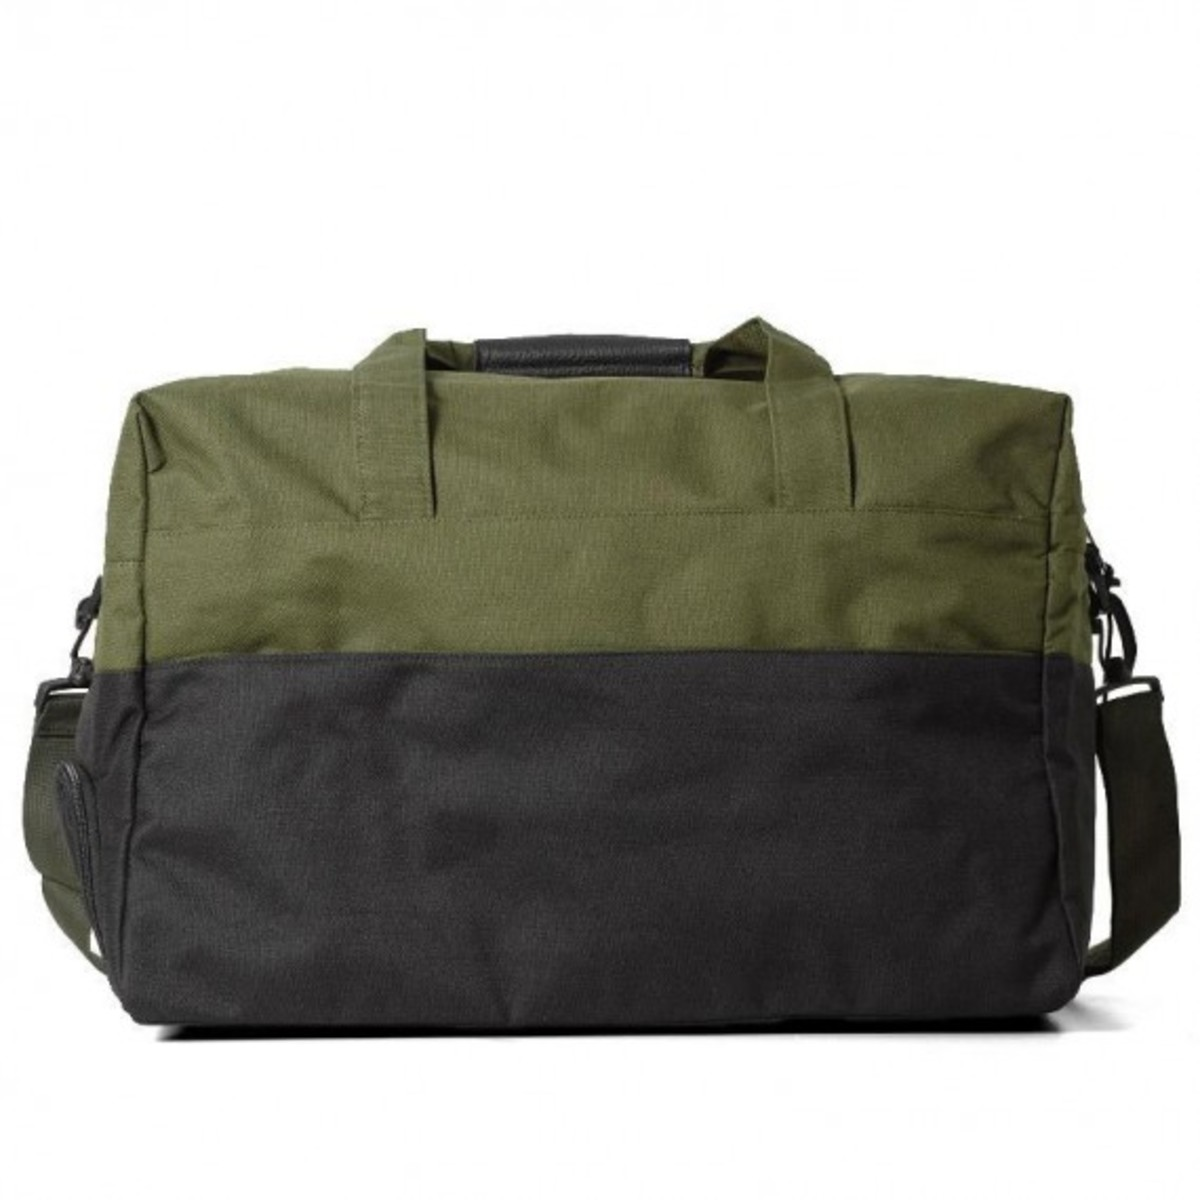 stussy-herschel-supply-duffle-bag-collection-02